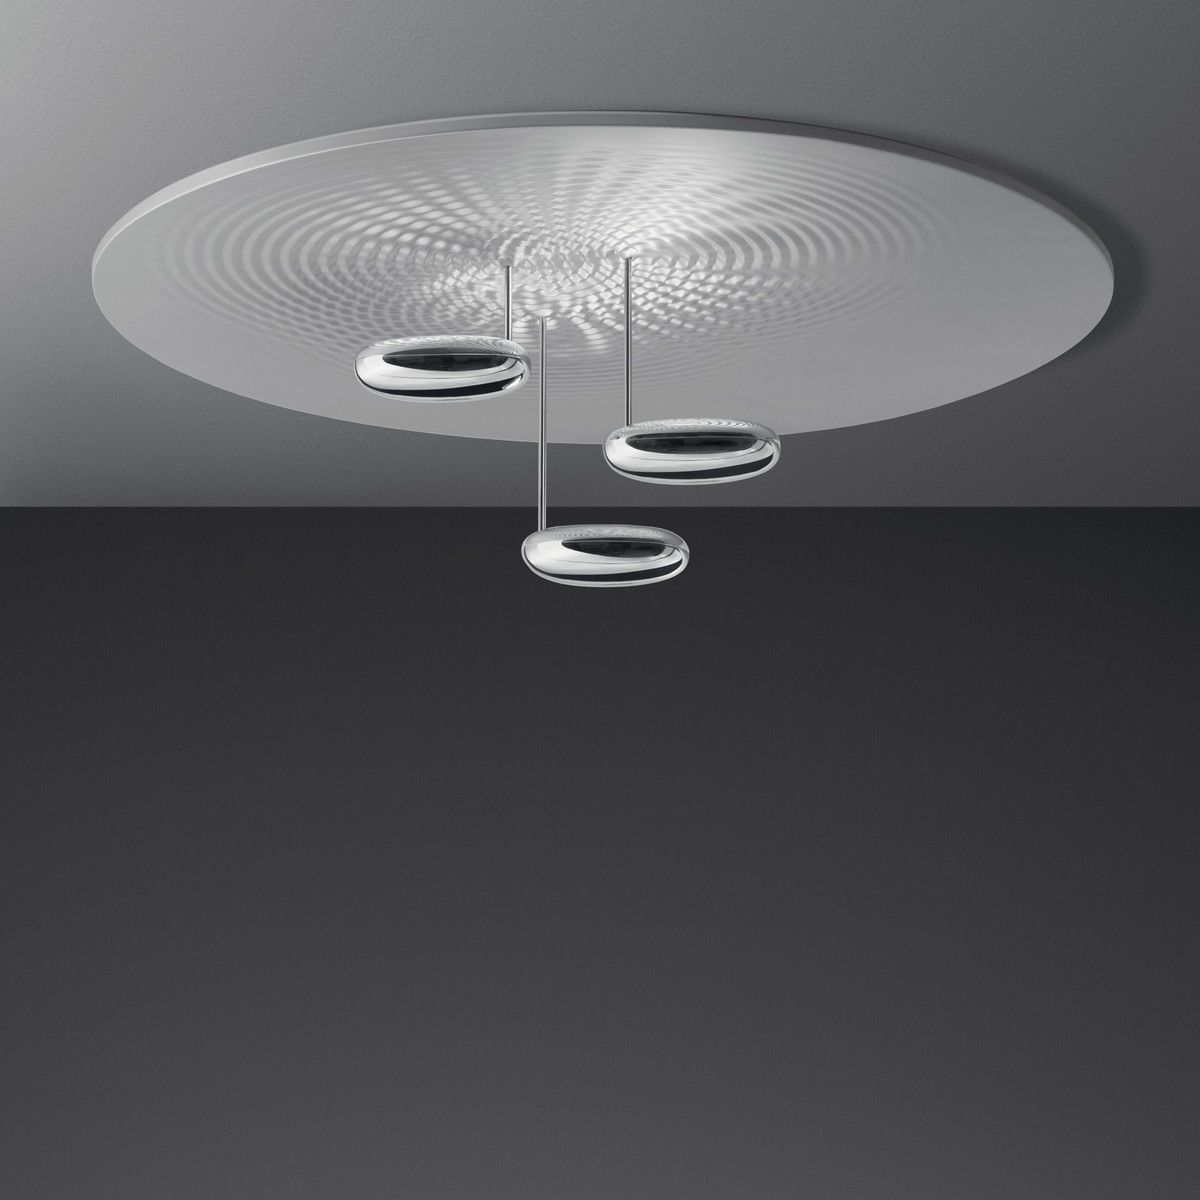 Droplet soffitto led ceiling lamp artemide for Deckenleuchte led design